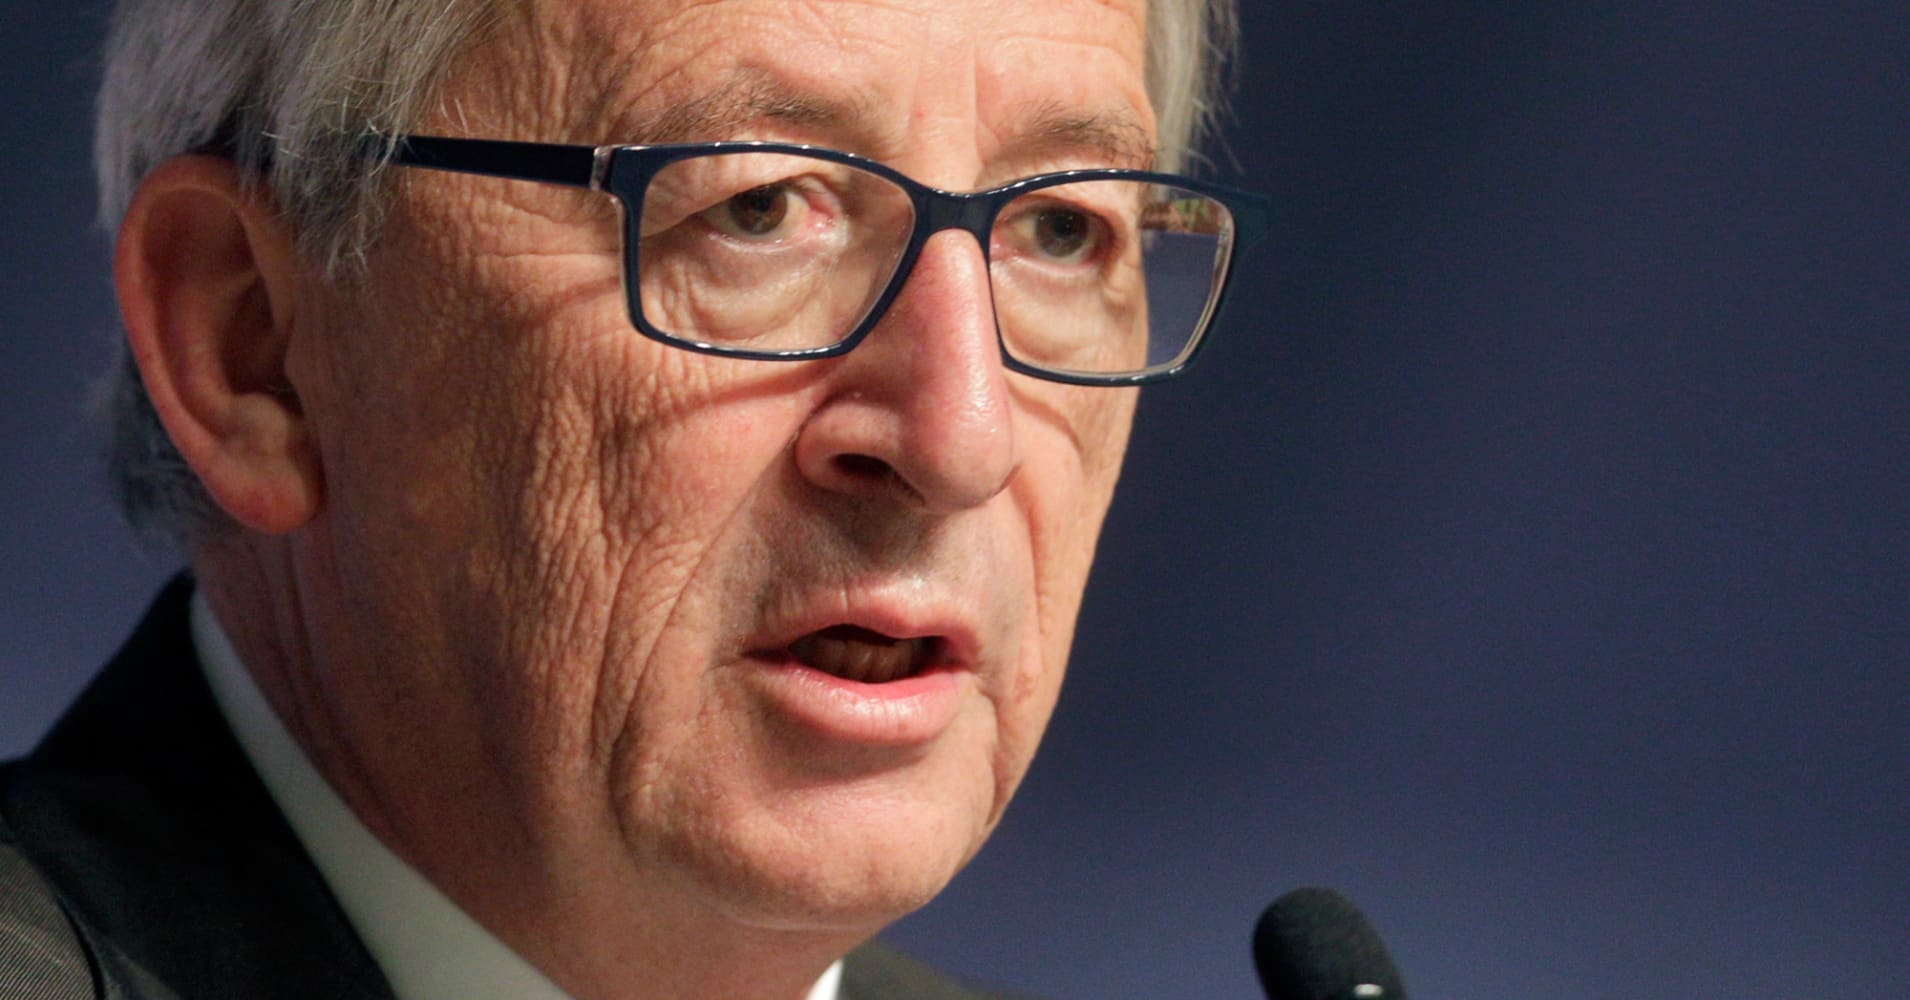 Live blog: EU's Juncker says 'the wind is back in Europe's sails'